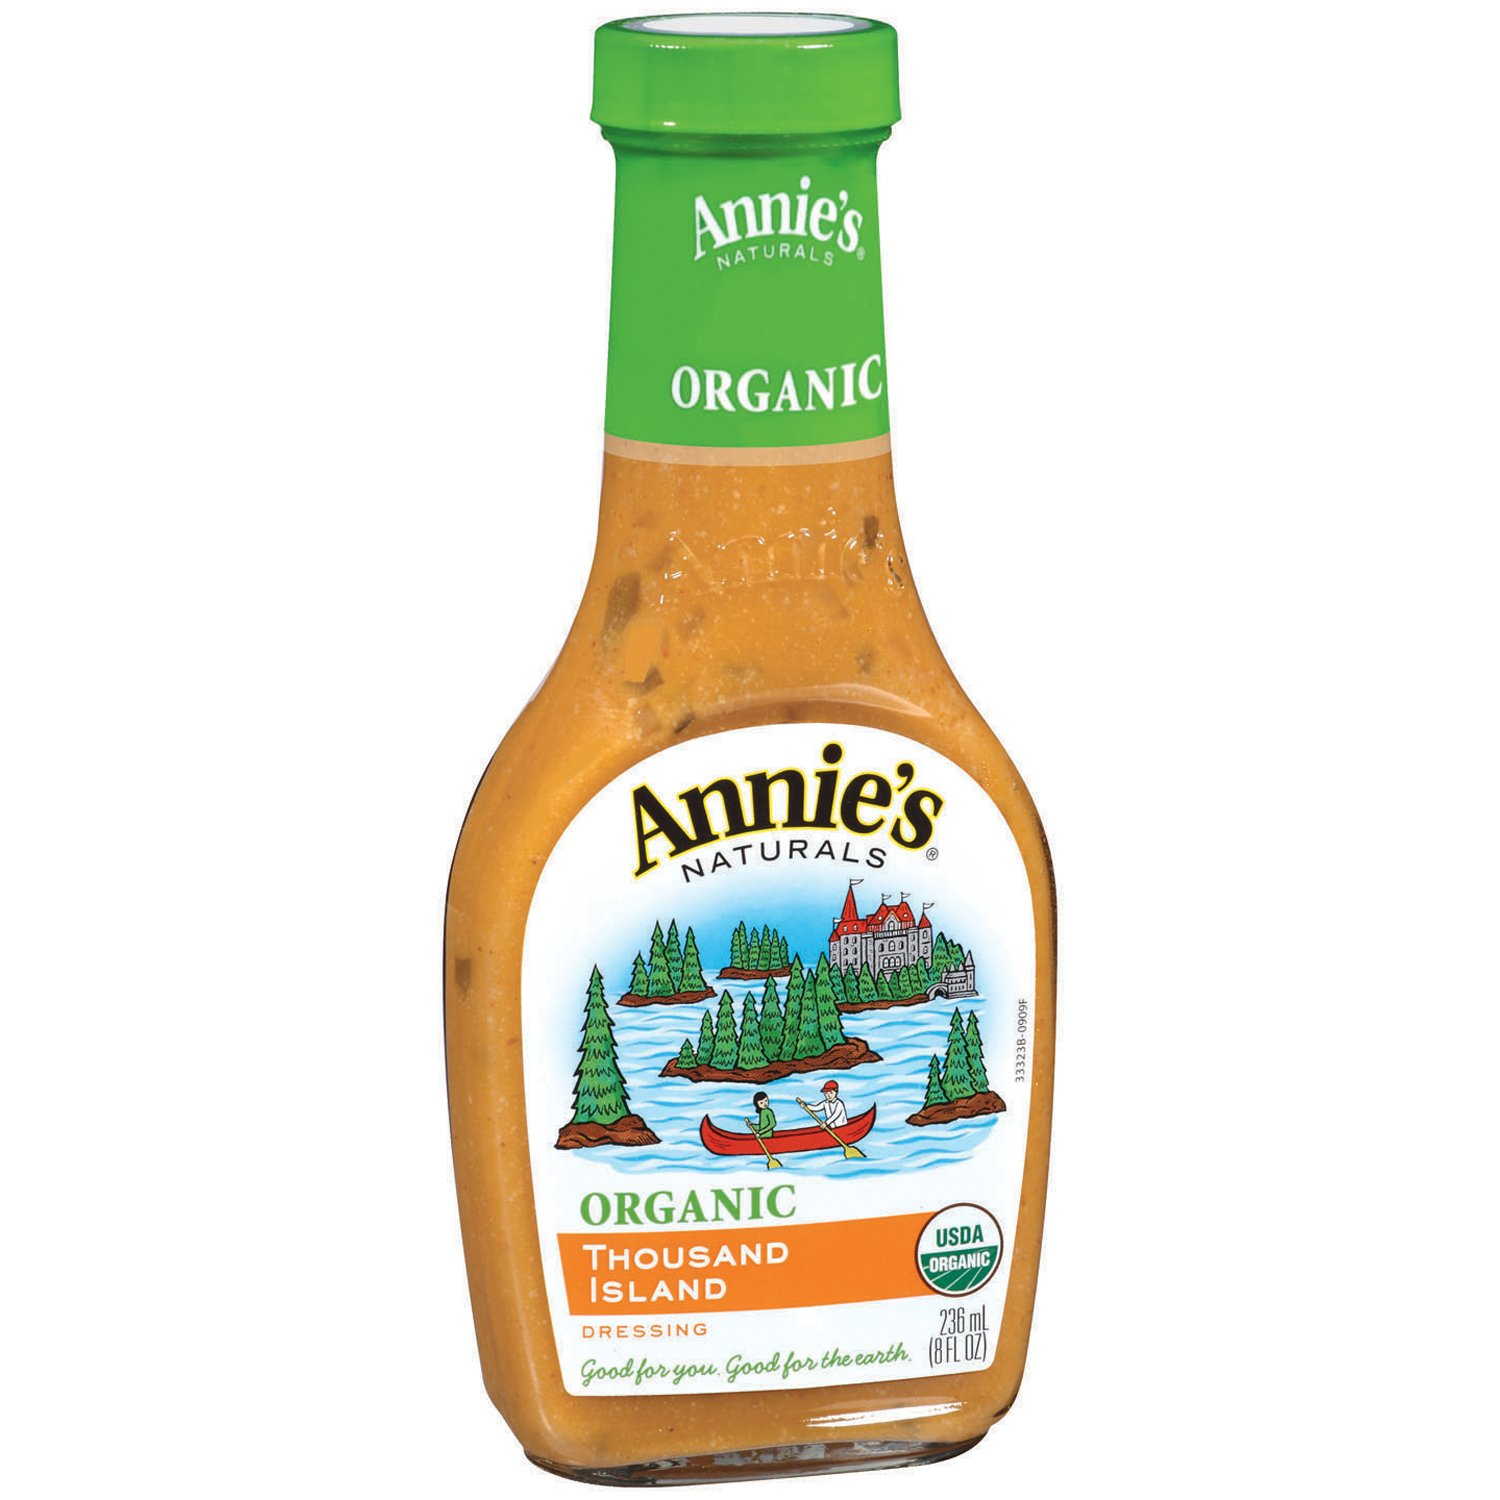 Annie's Organic Gluten Free Thousand Island Dressing 8 fl oz Bottle